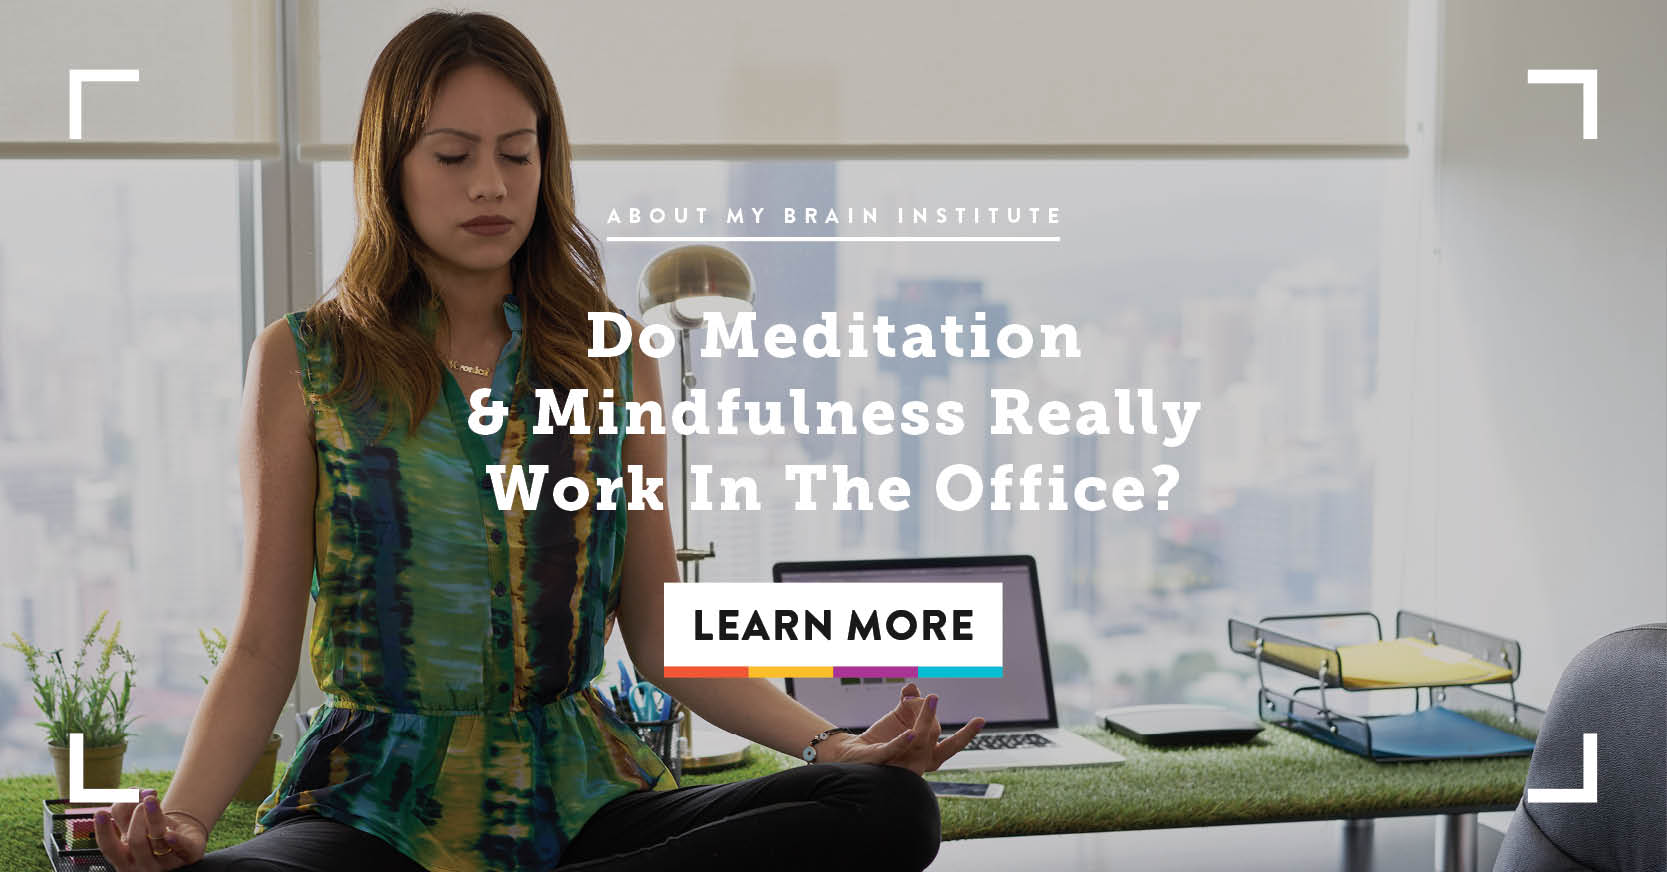 Do Meditation & Mindfulness Really Work in the Office?